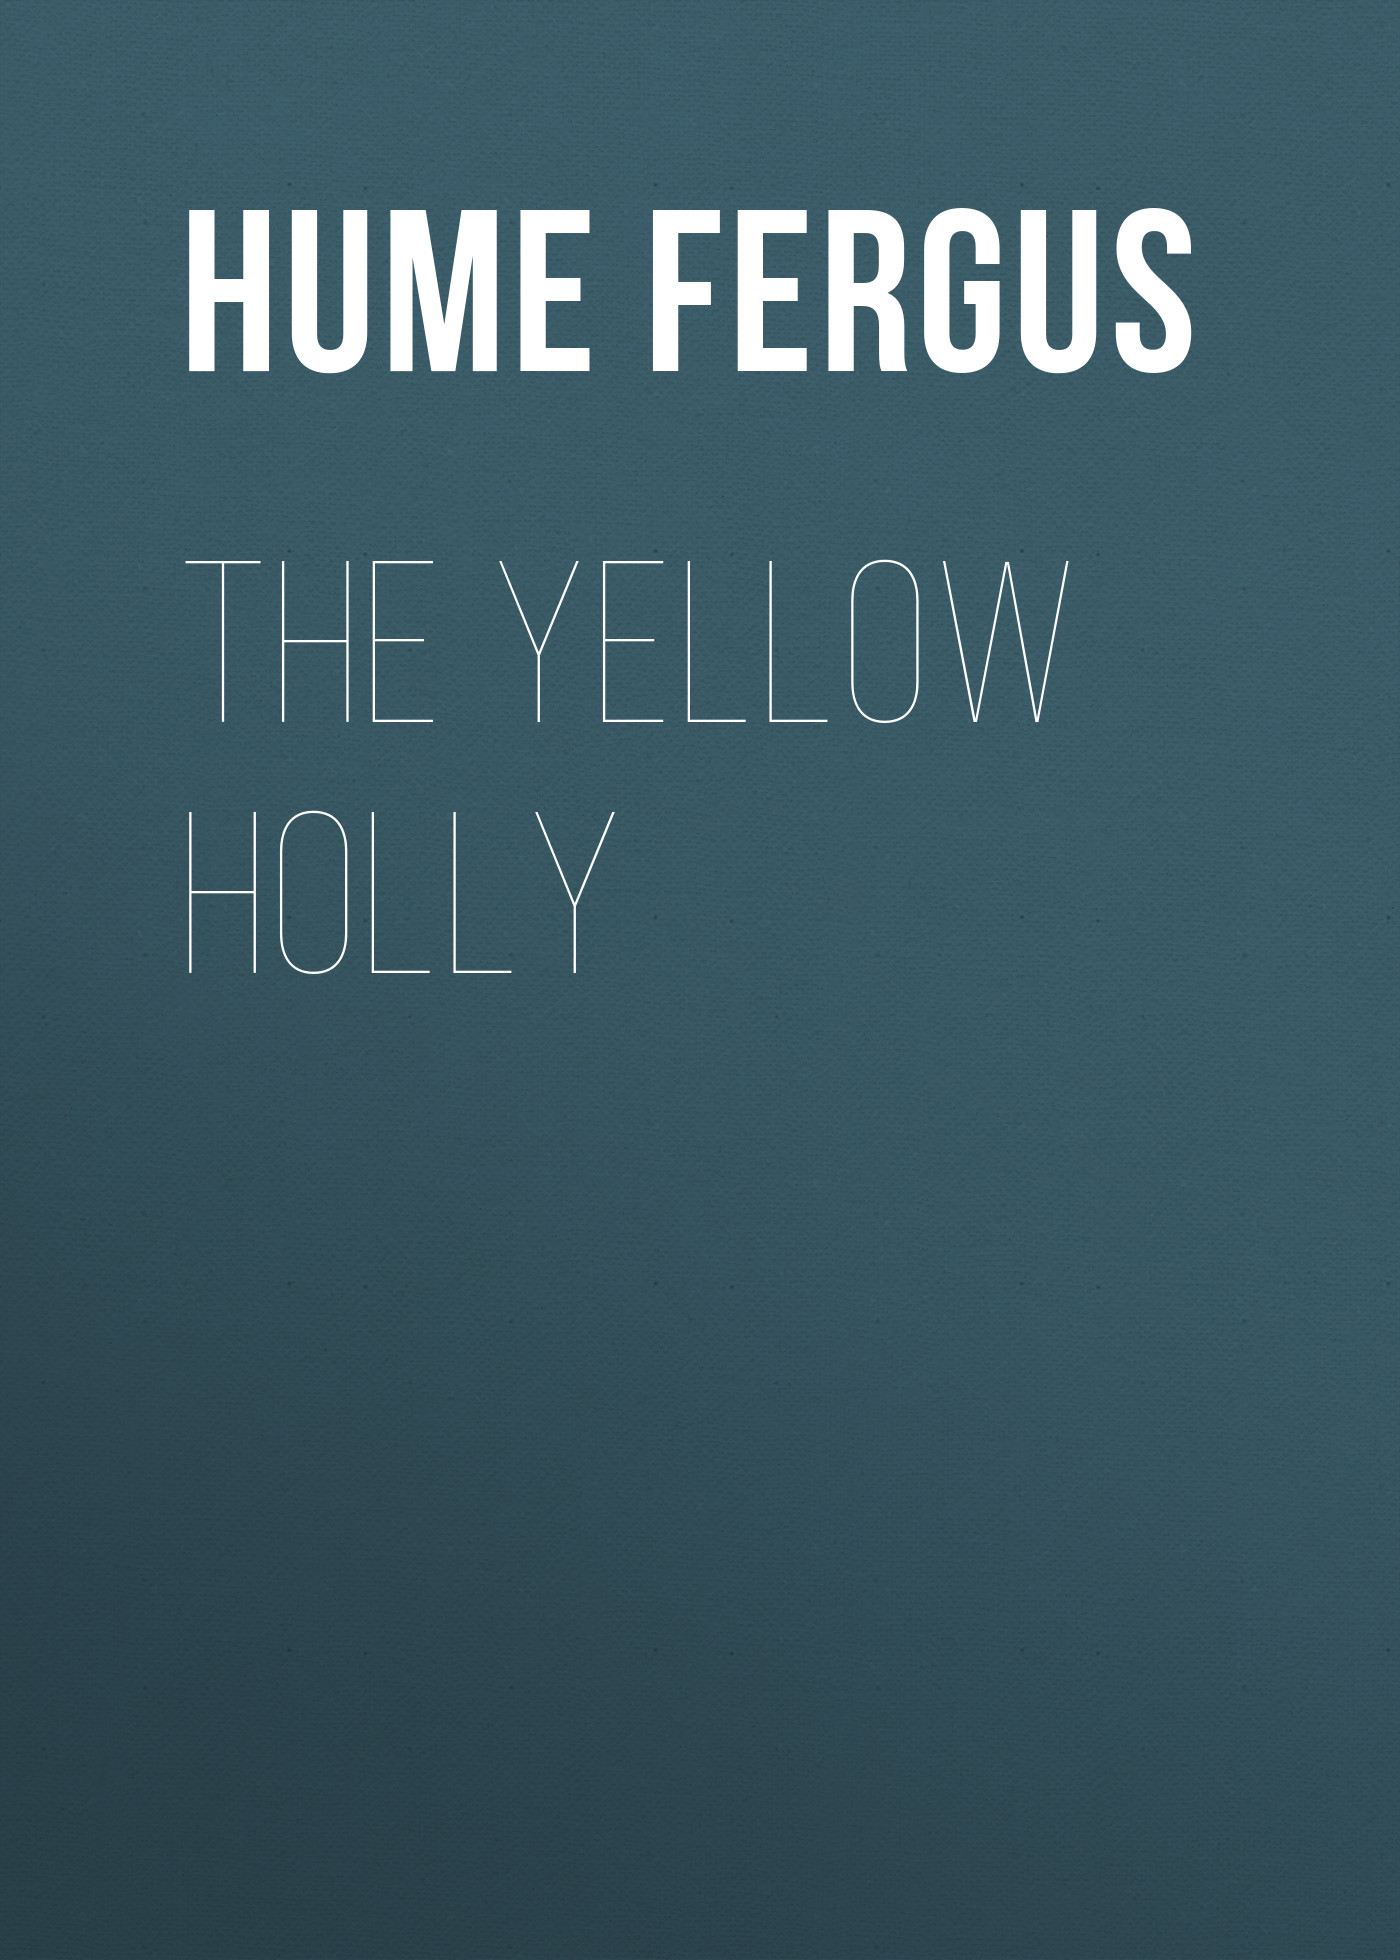 Hume Fergus The Yellow Holly fergus hume a woman s burden